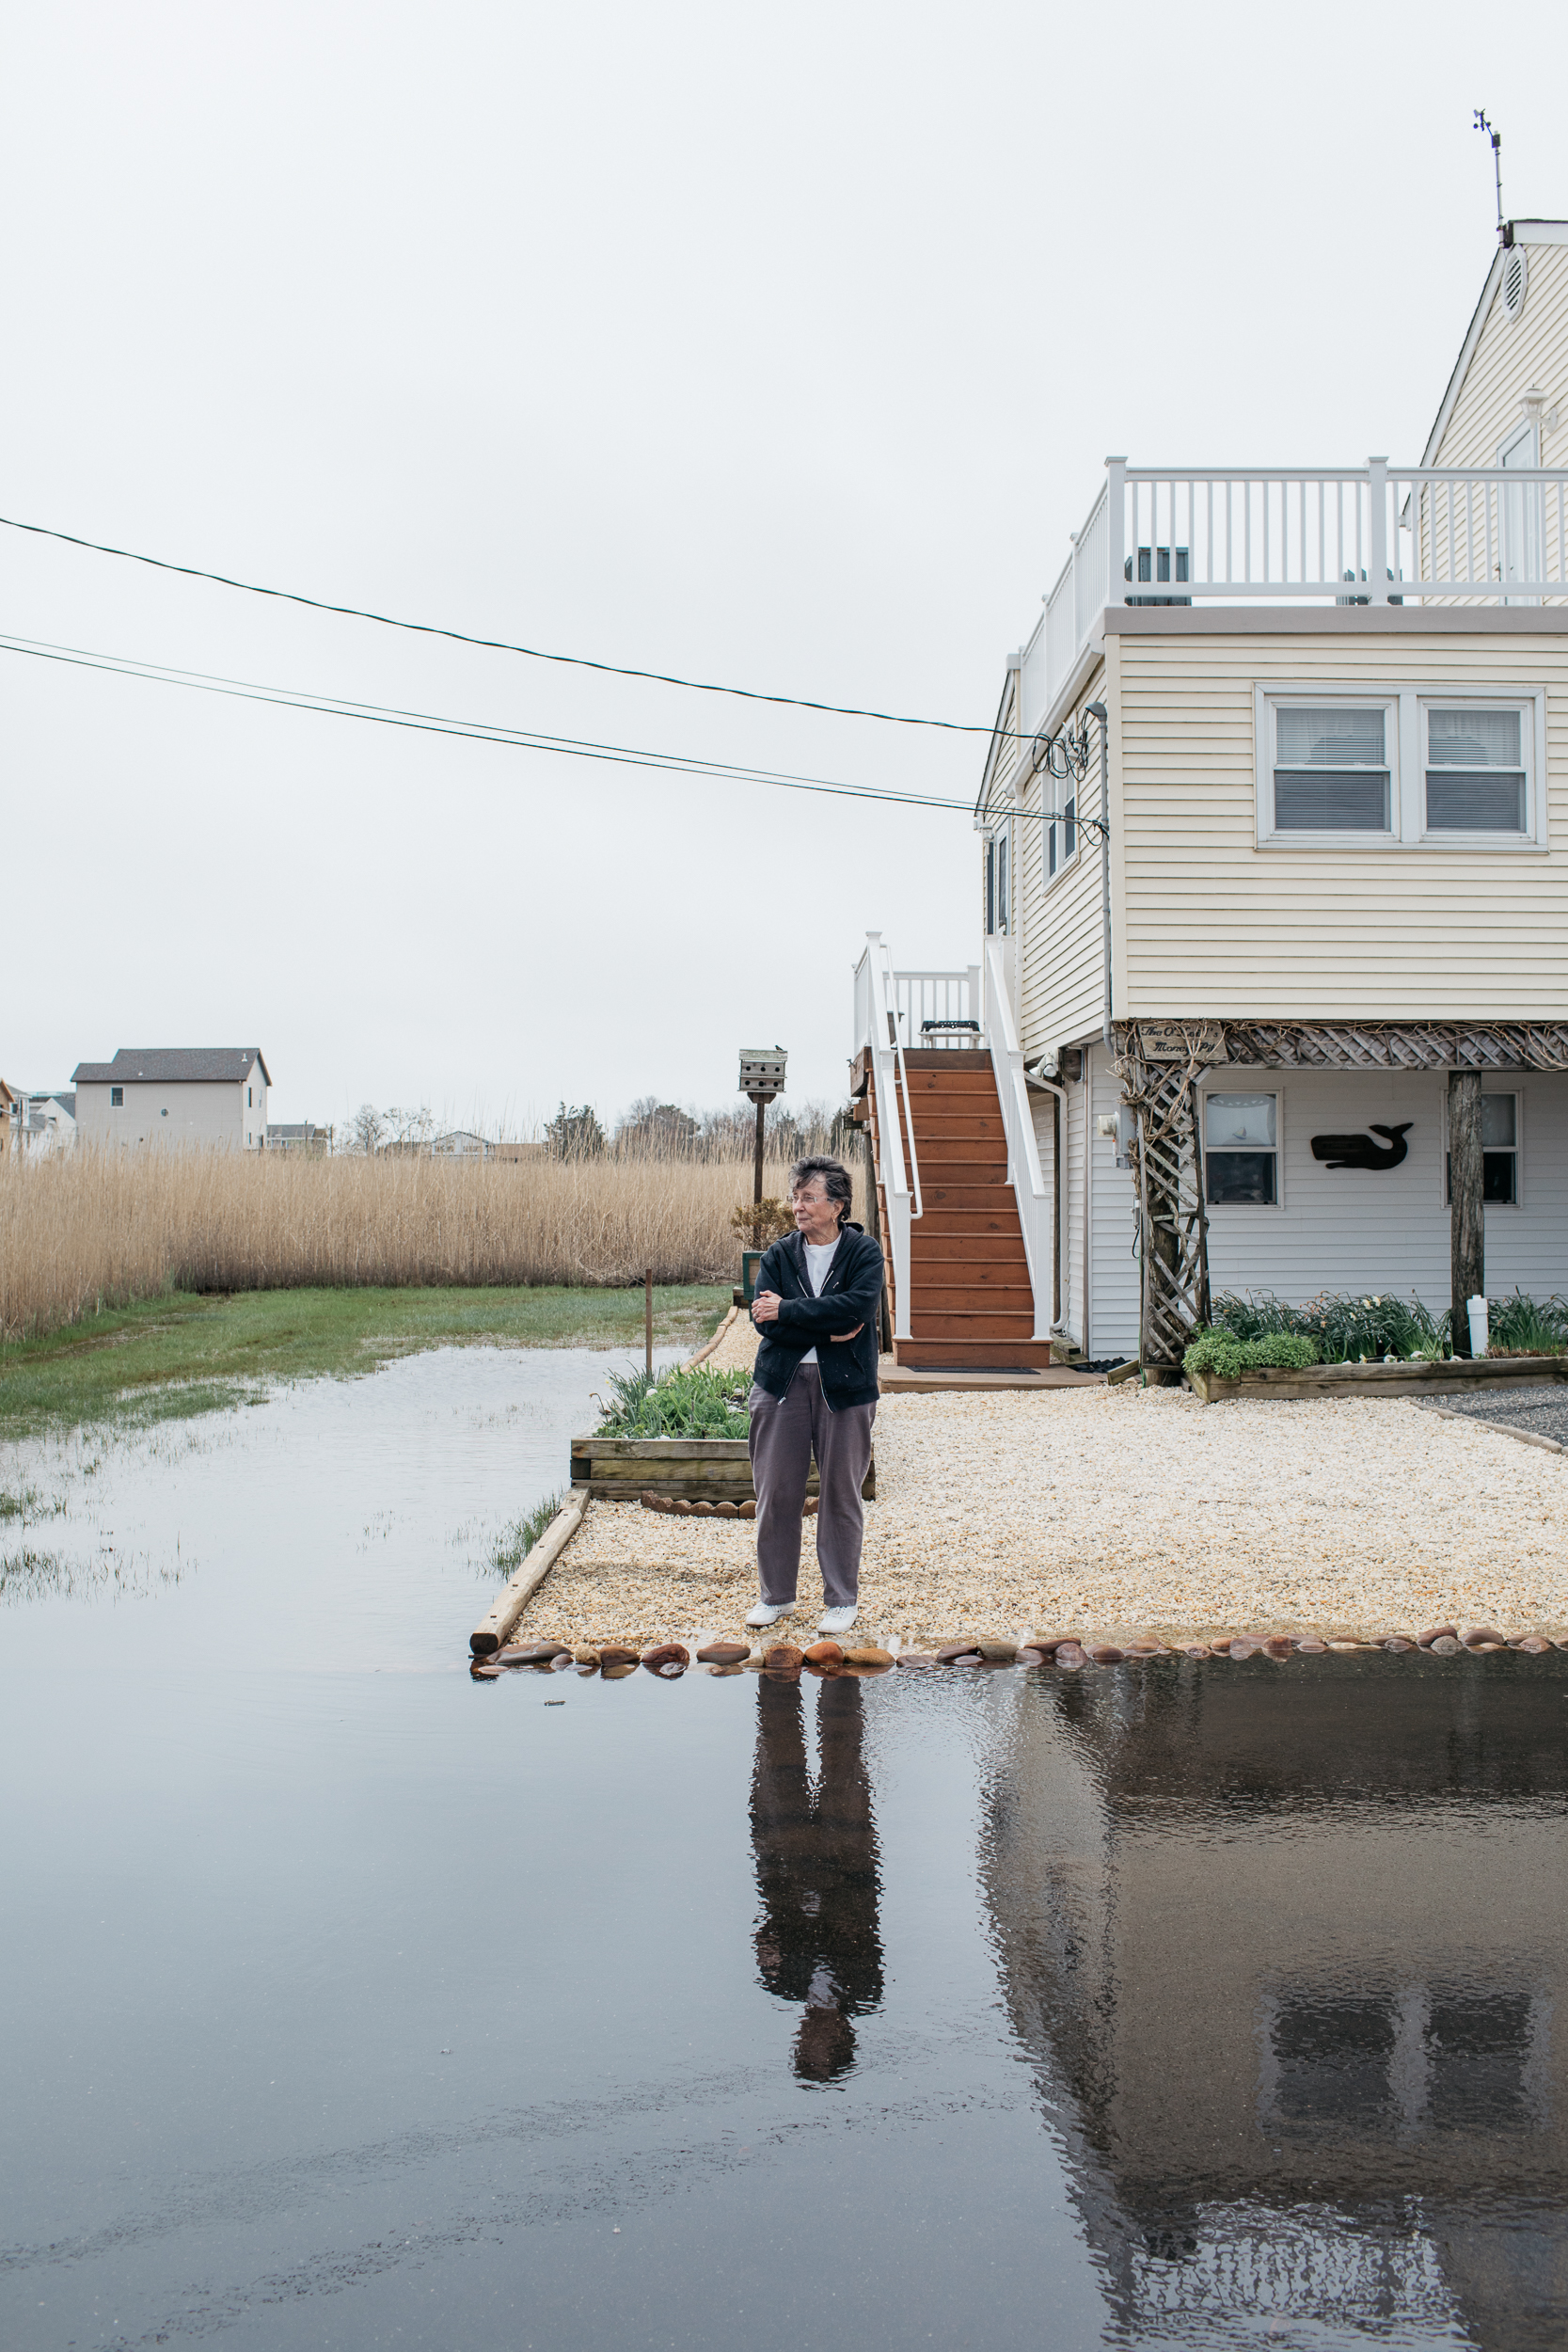 New Jersey Flooding story for Bloomberg Businessweek